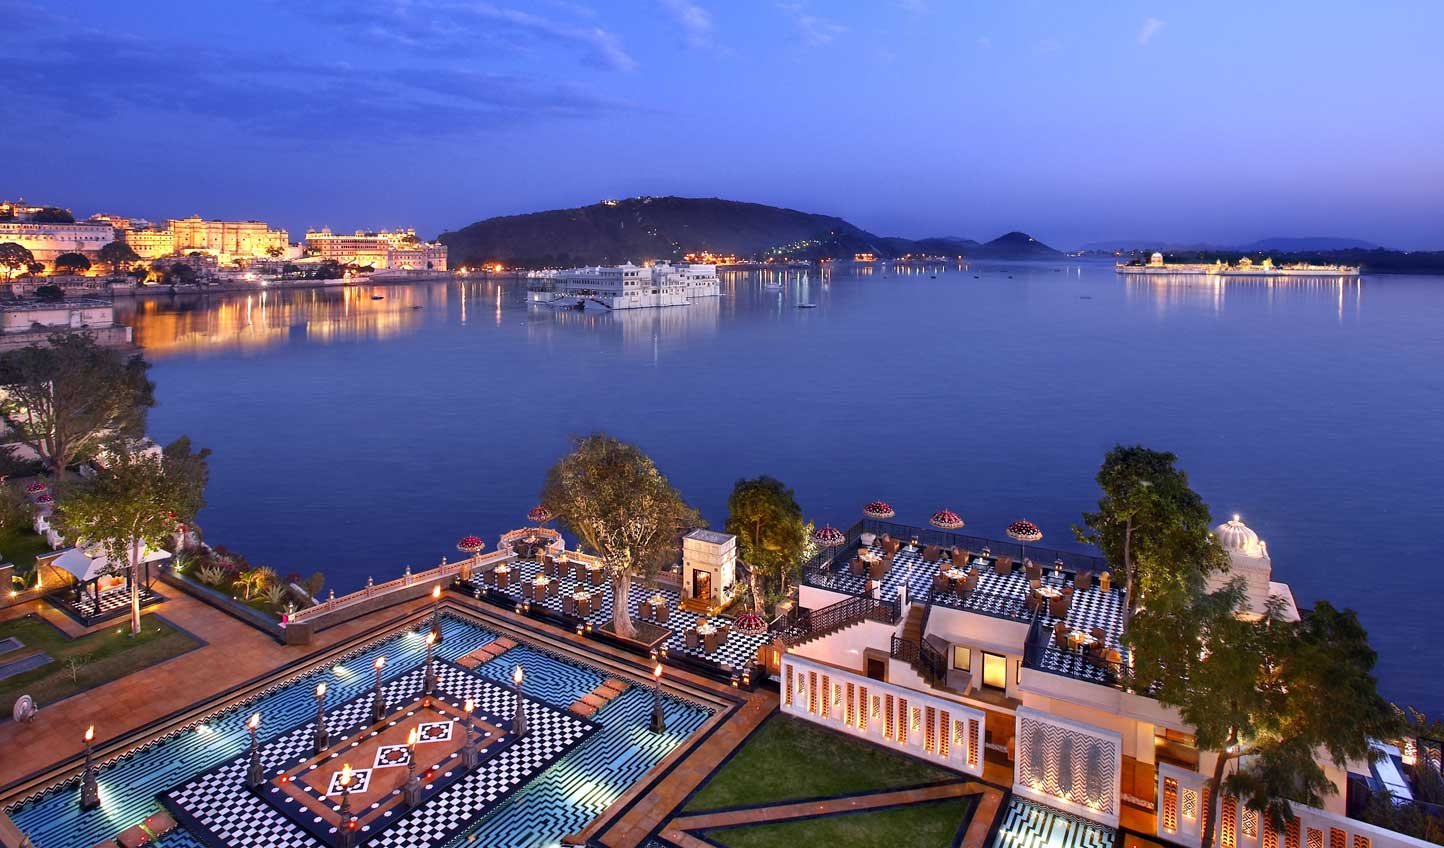 Dine beneath the stars and by the flicker of candlelight at Sheesh Mahal